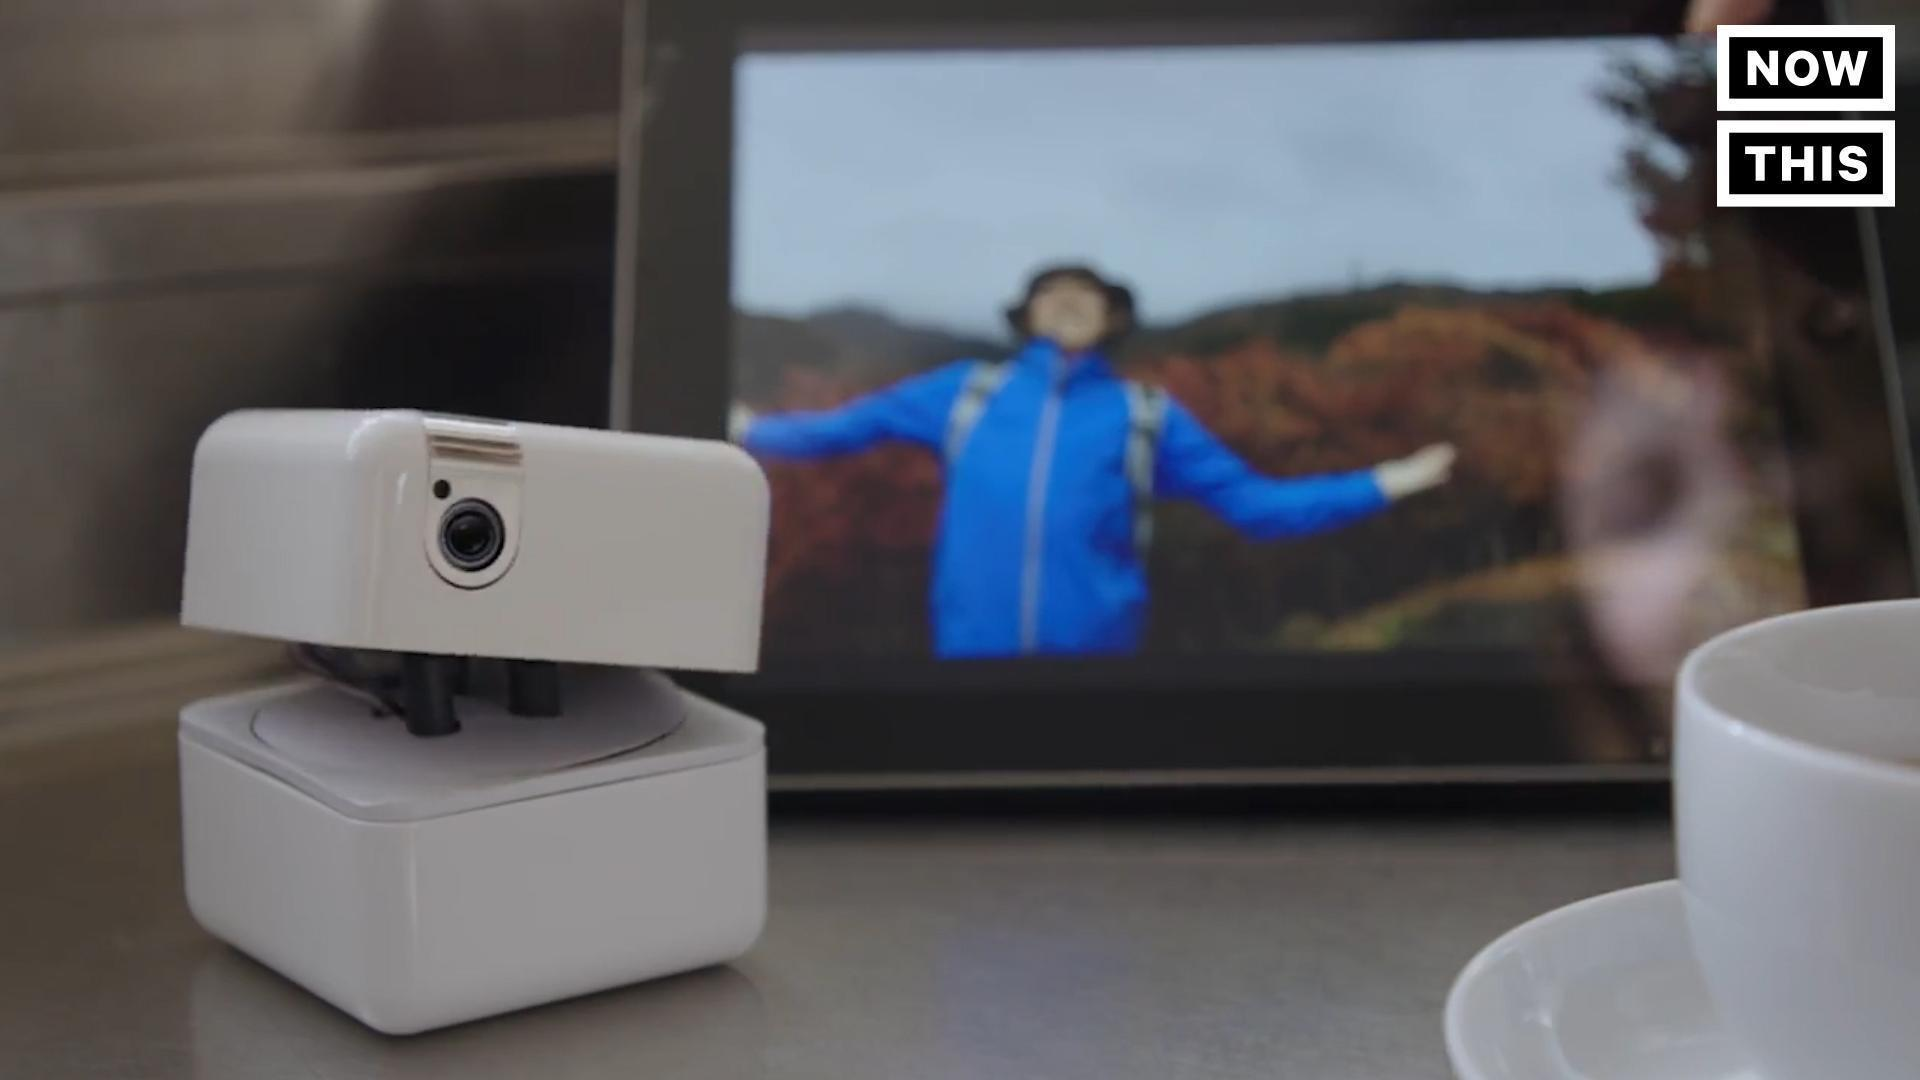 This Cute Animated Cube Is A Personal Assistant And Camera